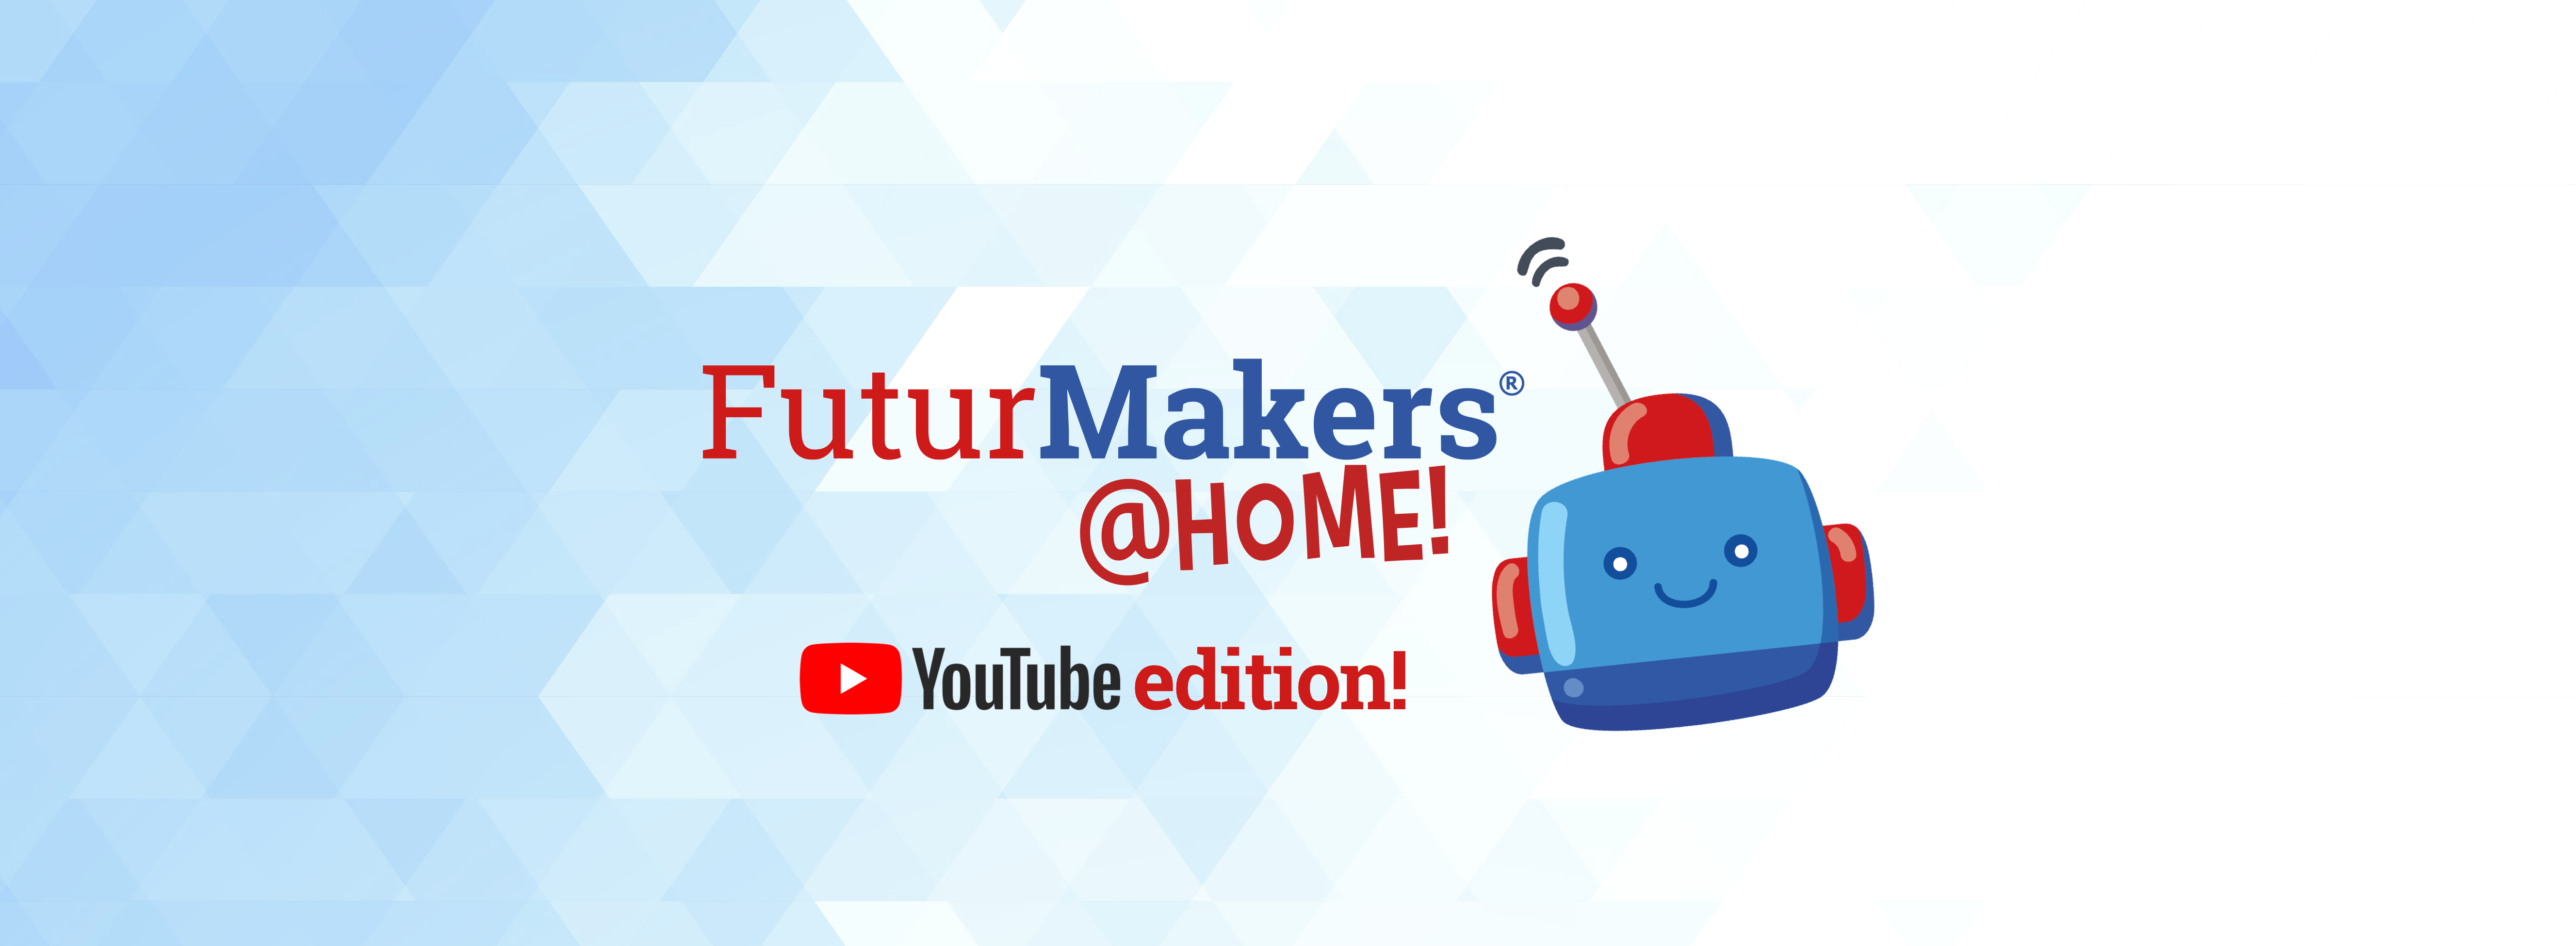 FuturMakers su Youtube